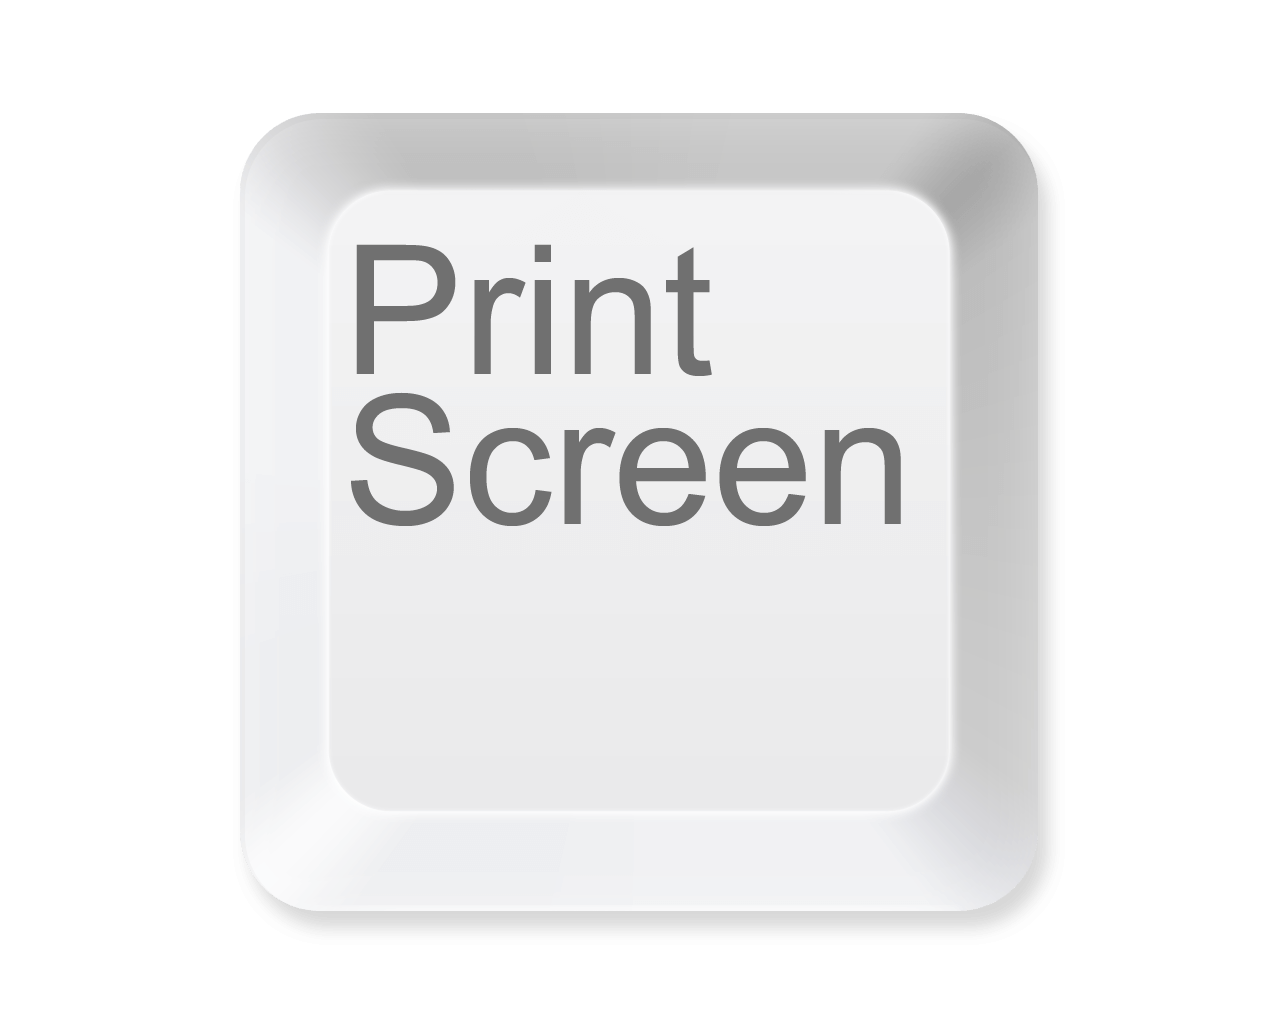 print screen - Printscreen: como capturar imagens no Chrome, MacOS e Windows